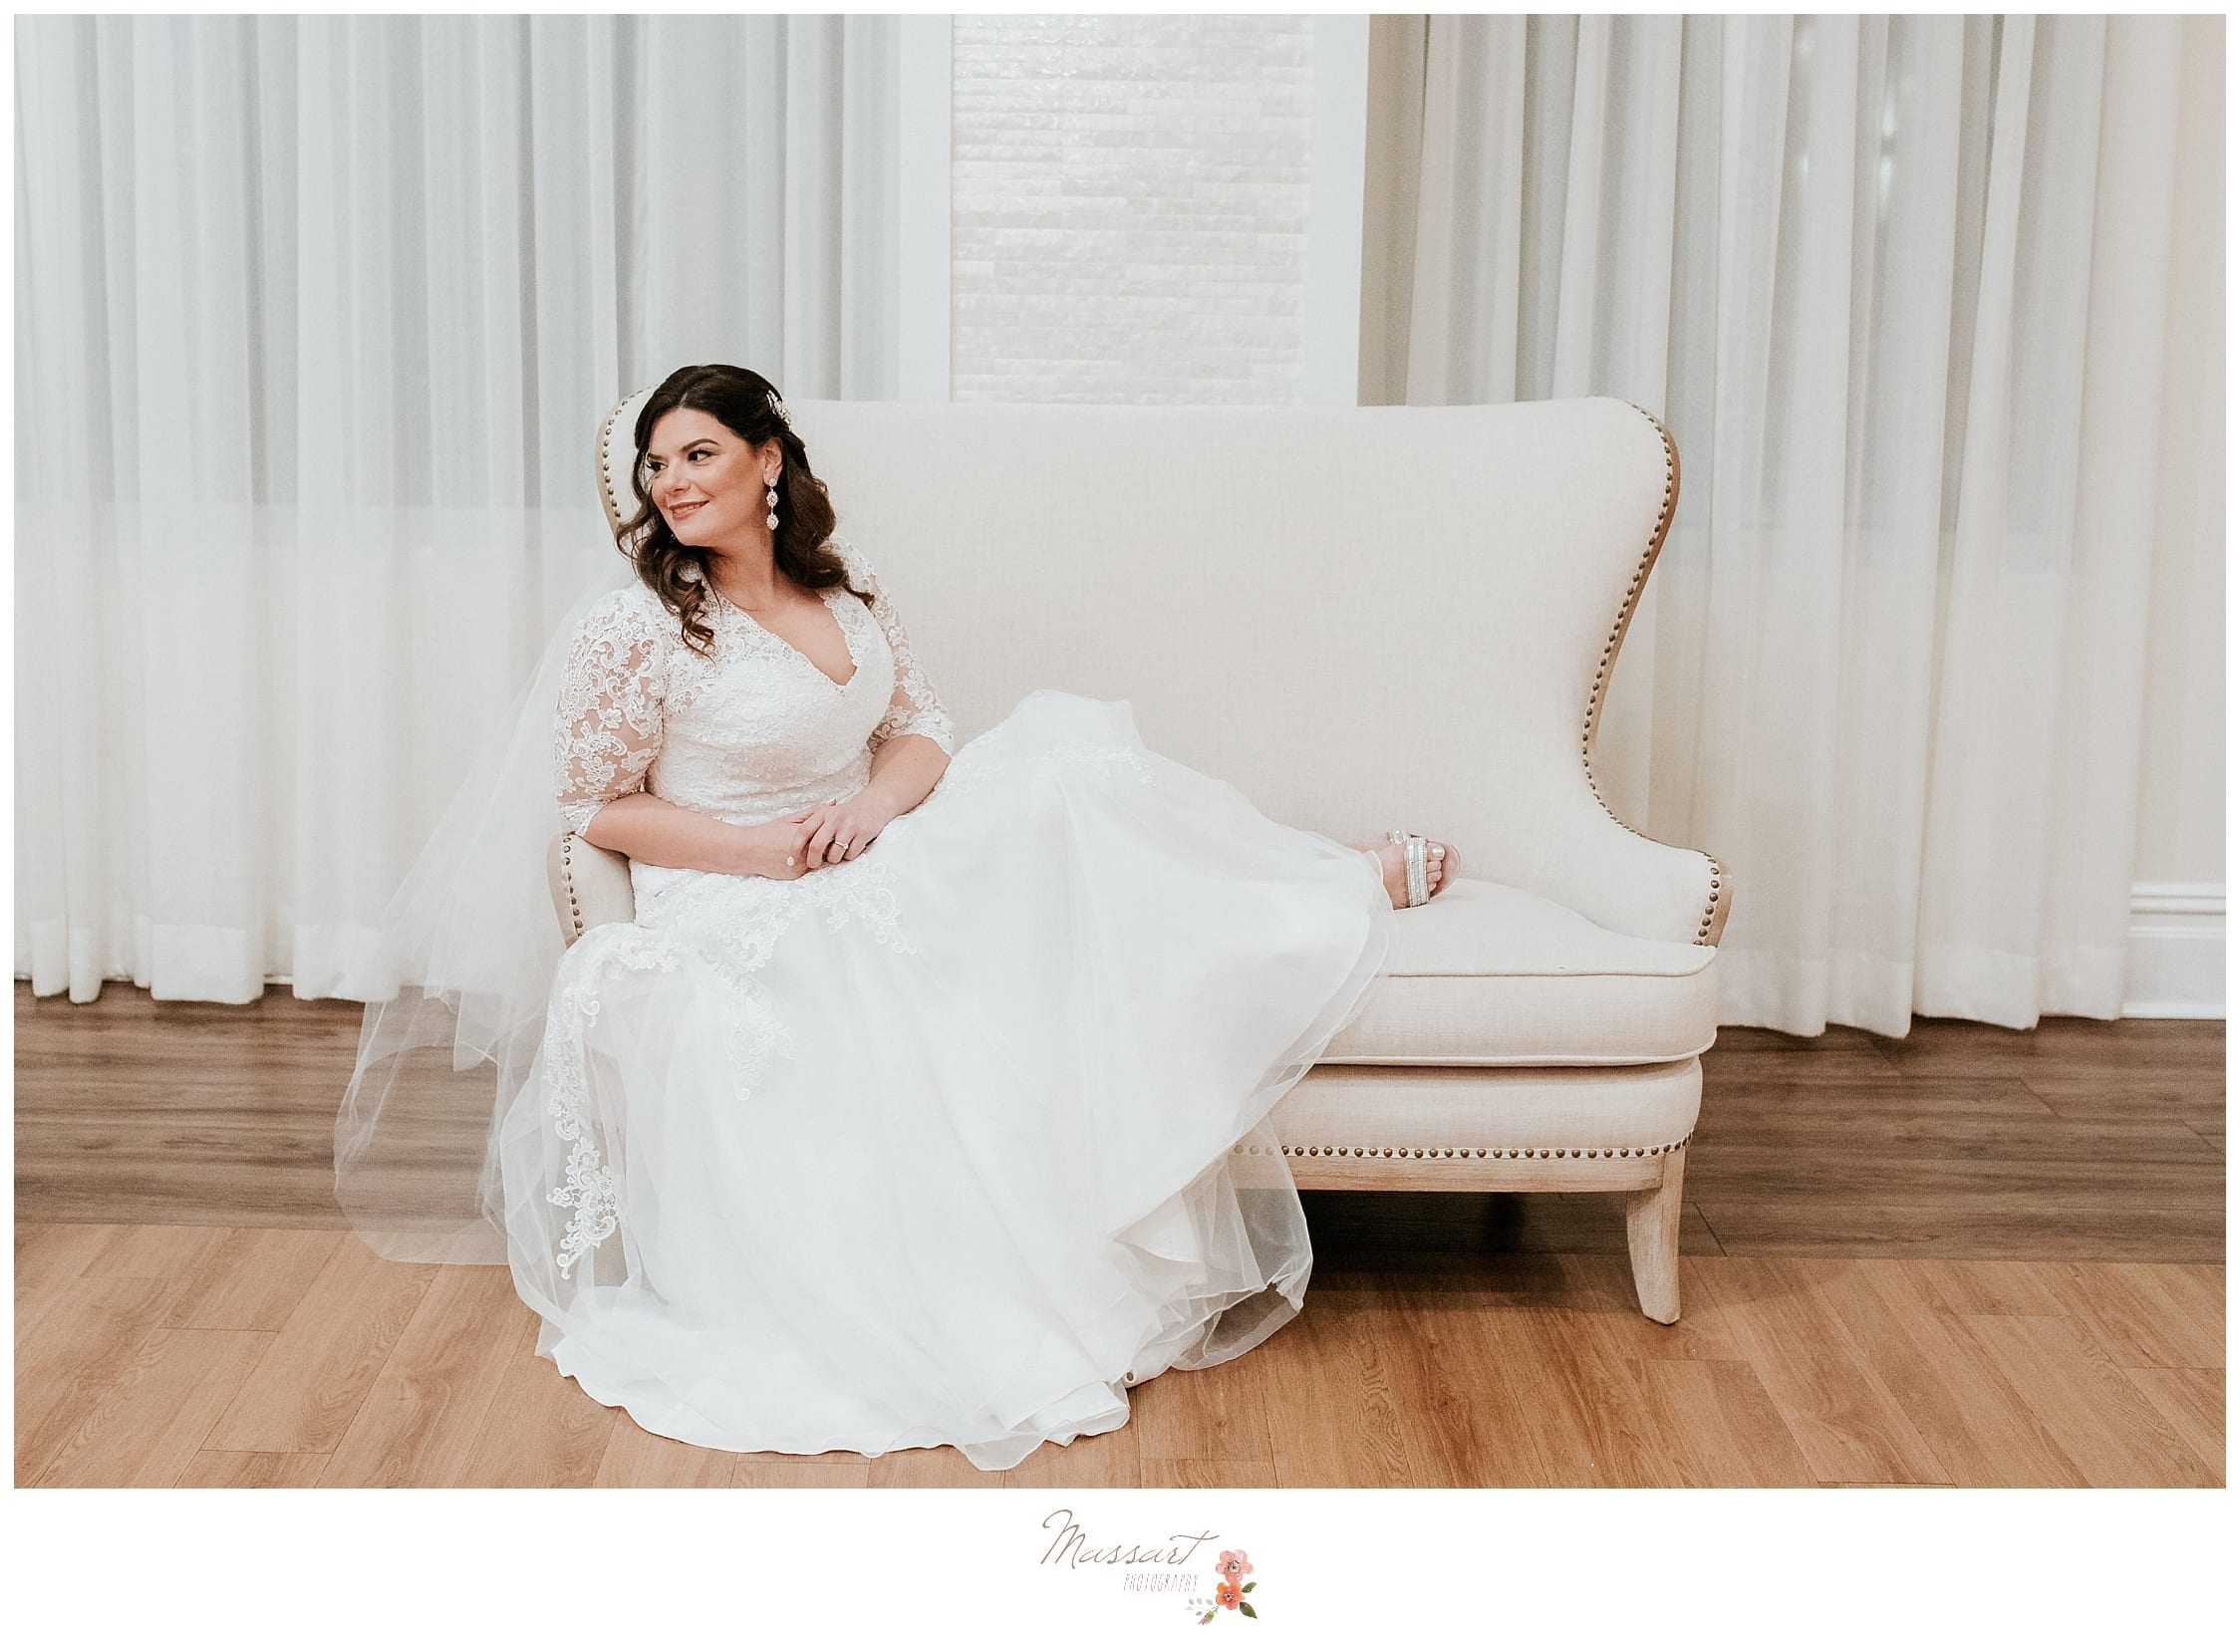 The bride poses for a portrait before the wedding ceremony begins at the atlantic resort in newport, rhode island